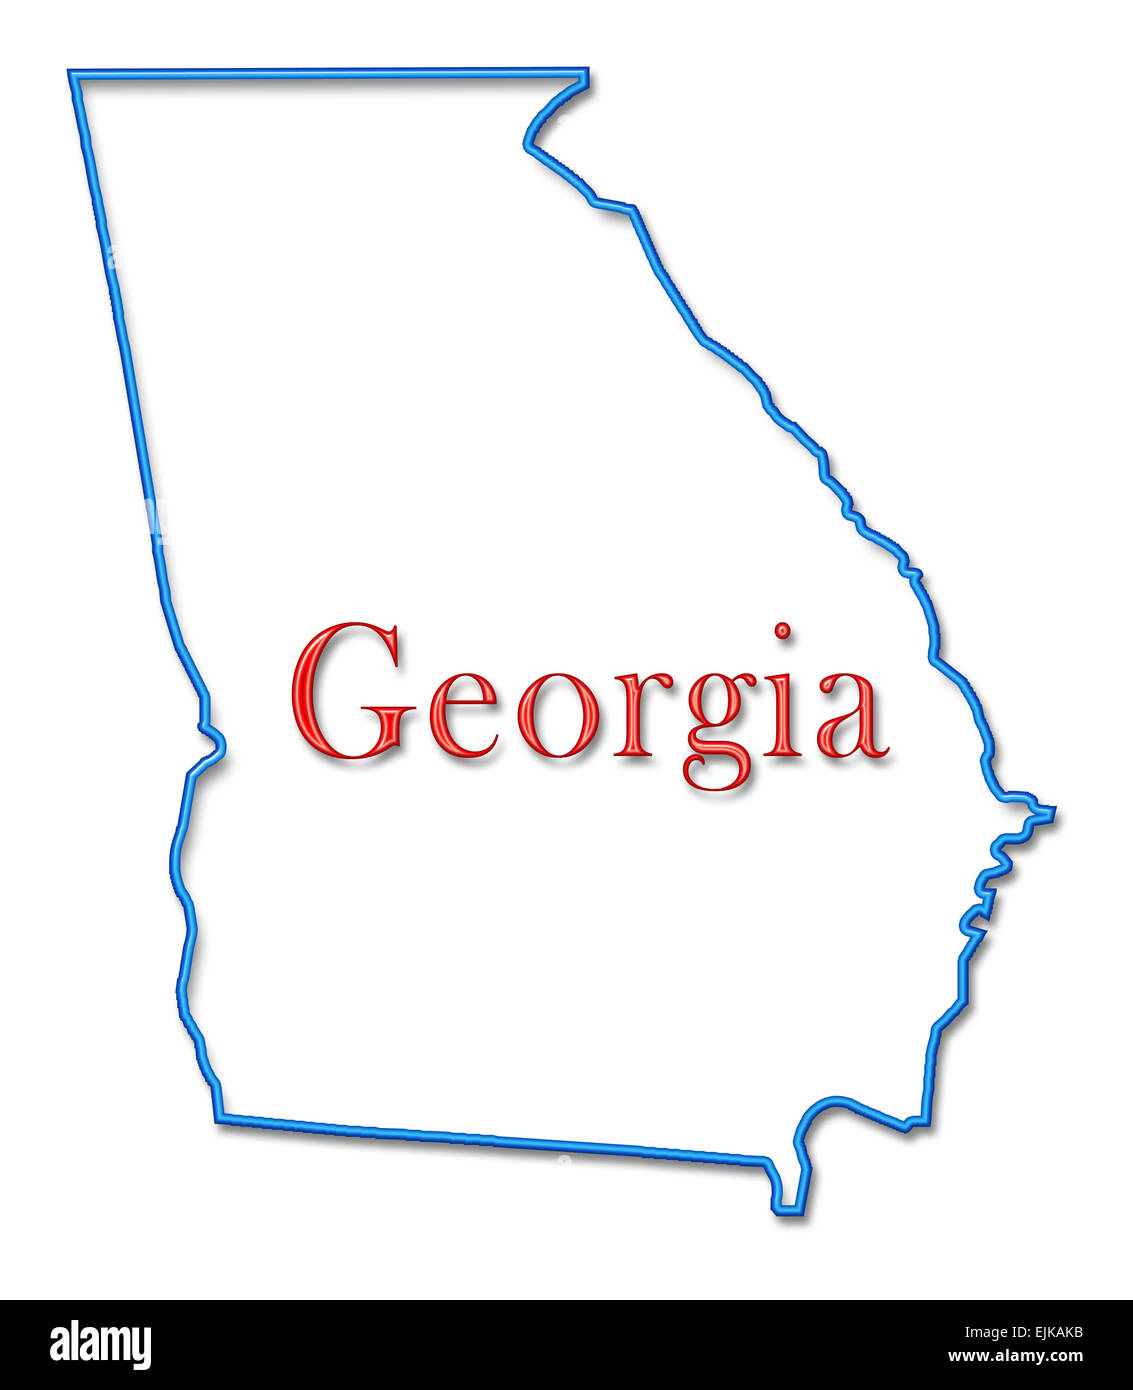 Georgia Map With Neon Blue Outline And Red Lettering Stock Photo - Georgia map outline